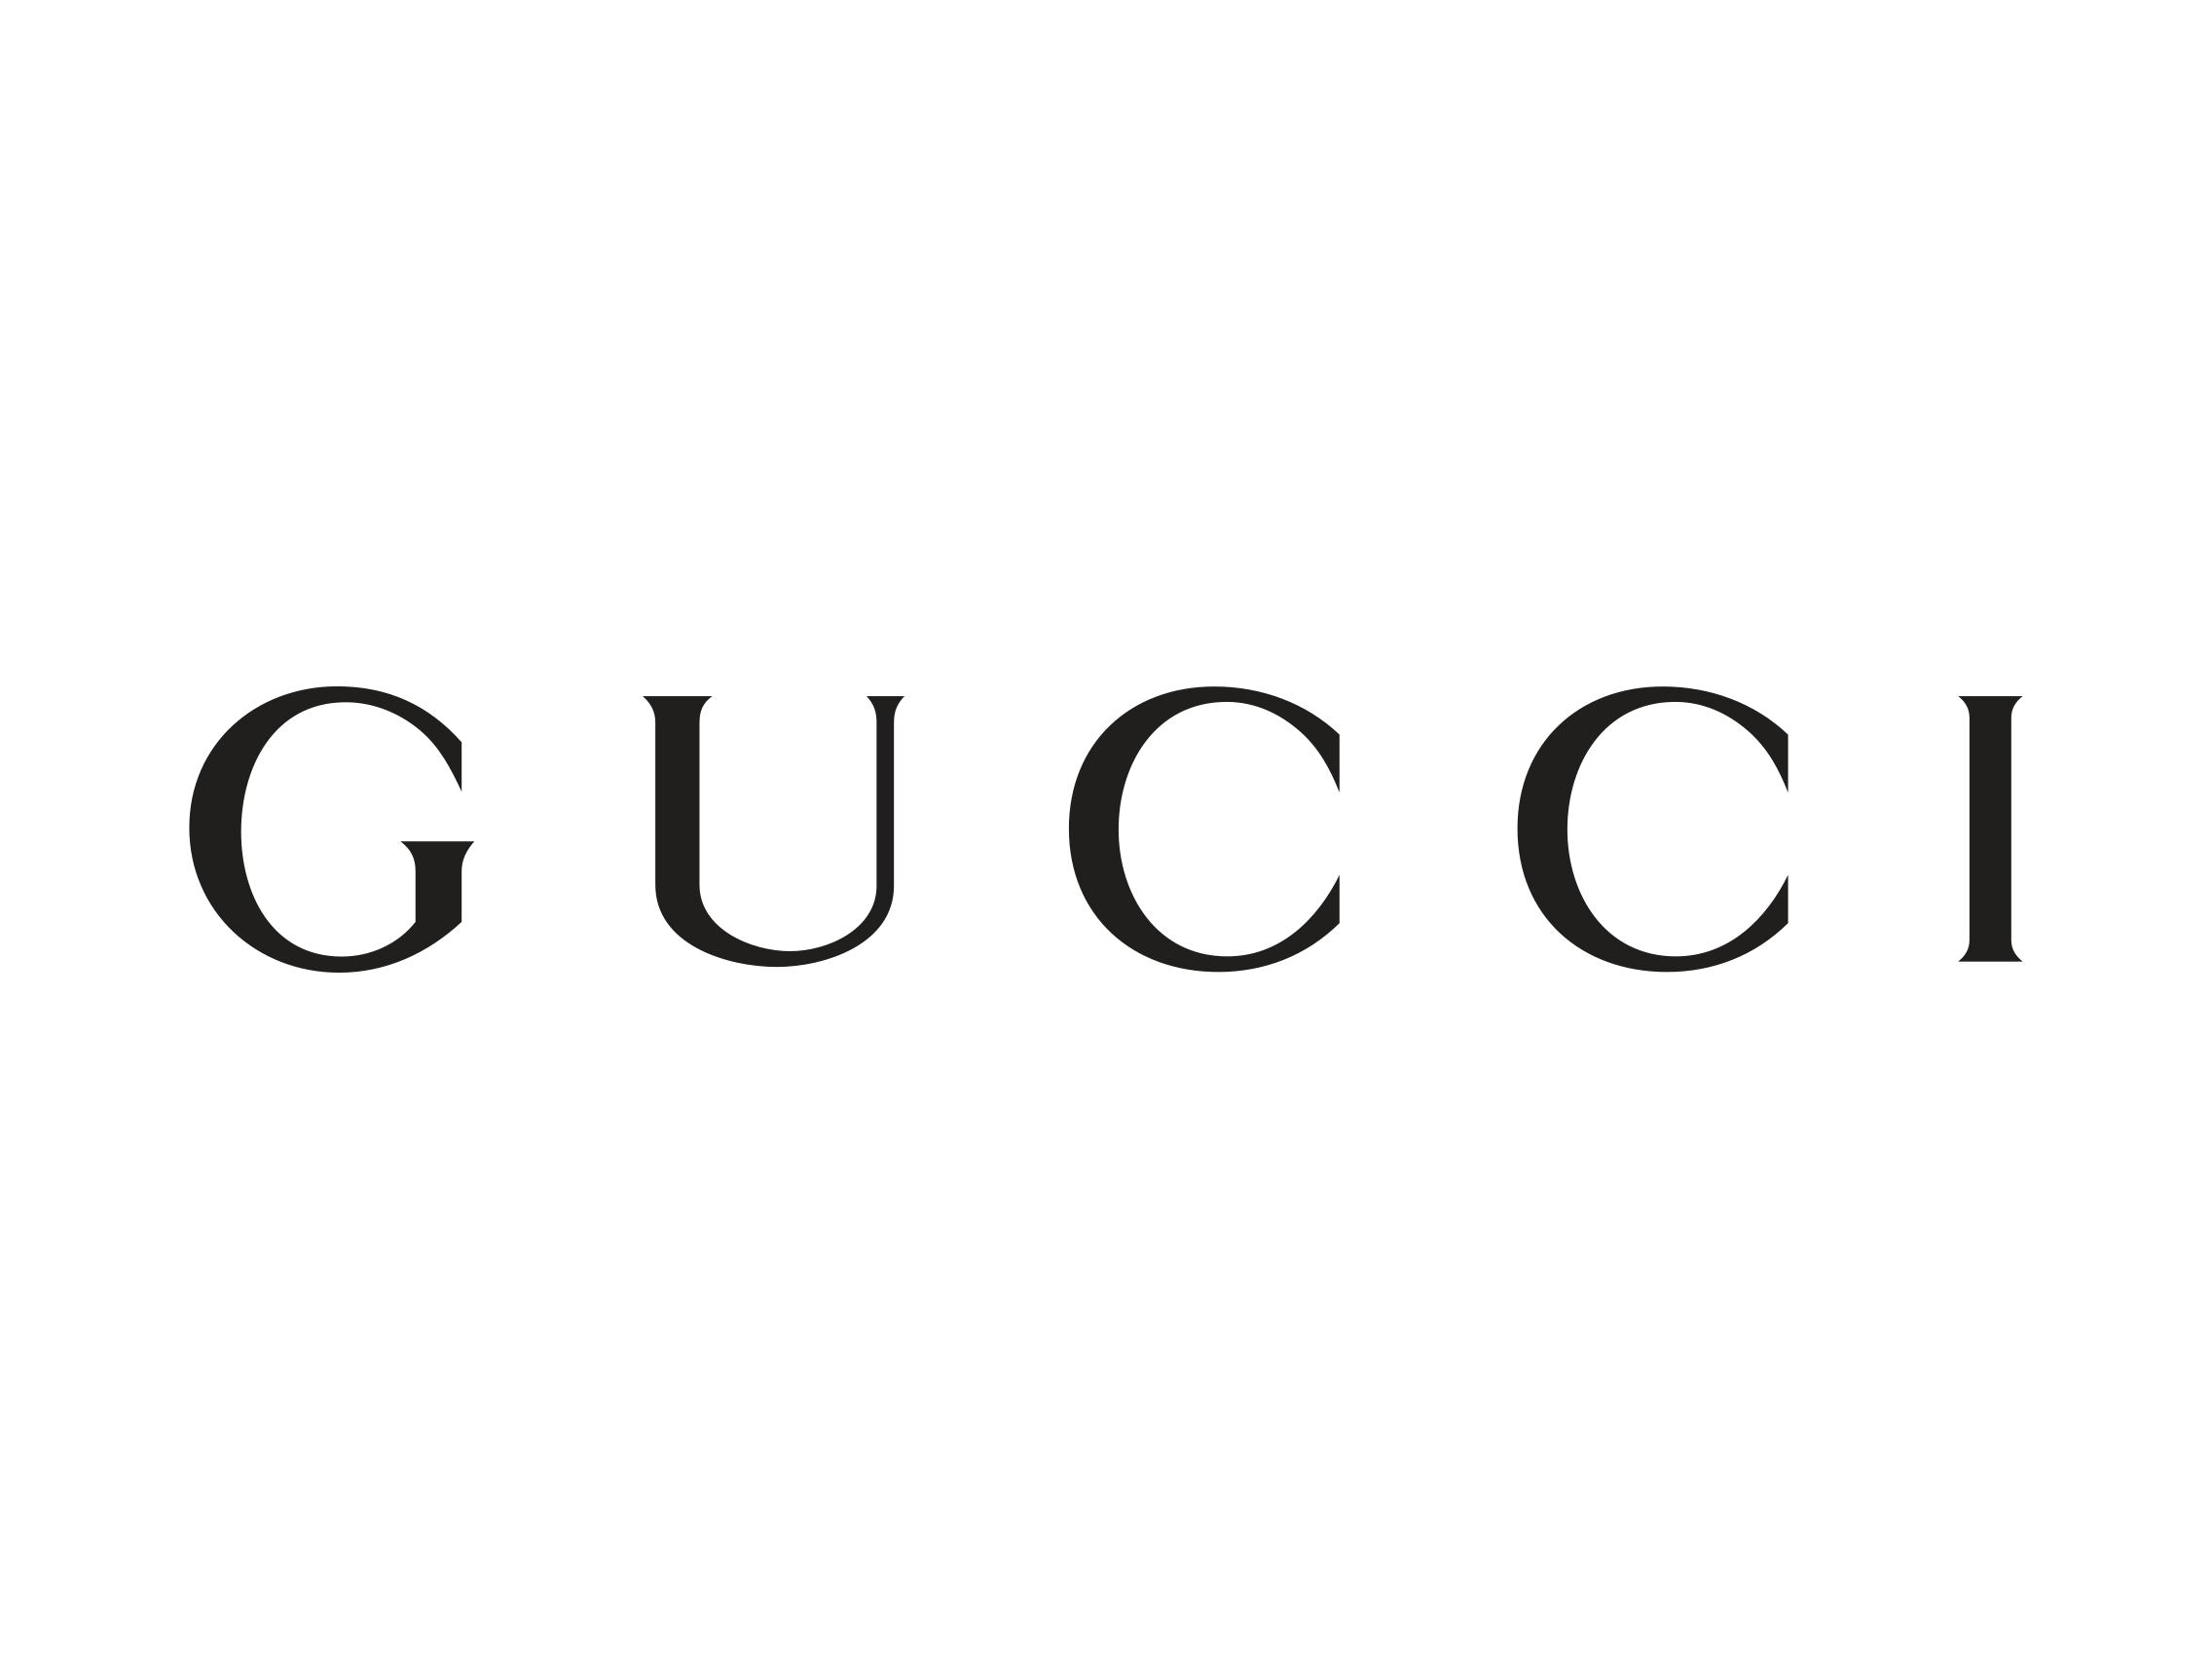 Gucci-Logo-wordmark.png